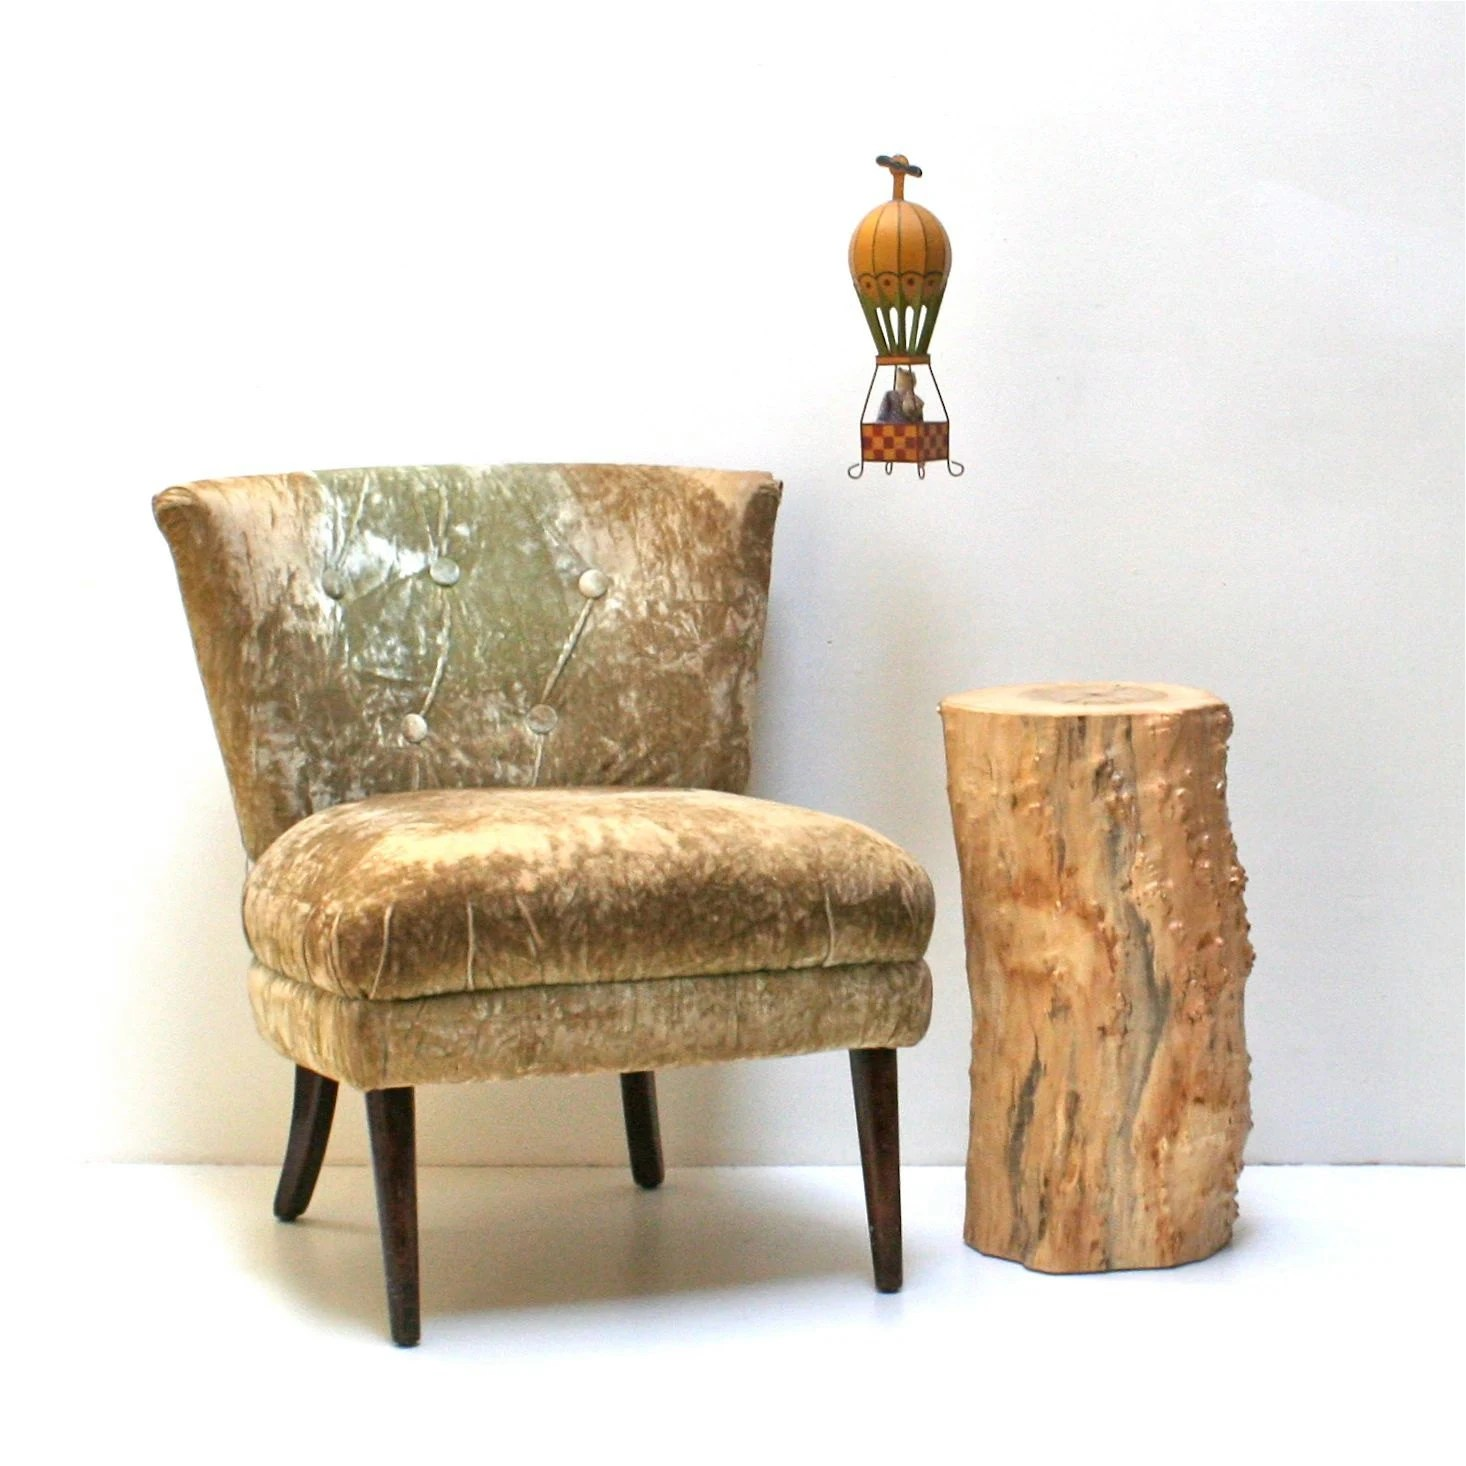 tree stump chairs folding chair diy nightstand end side table stool seat organic